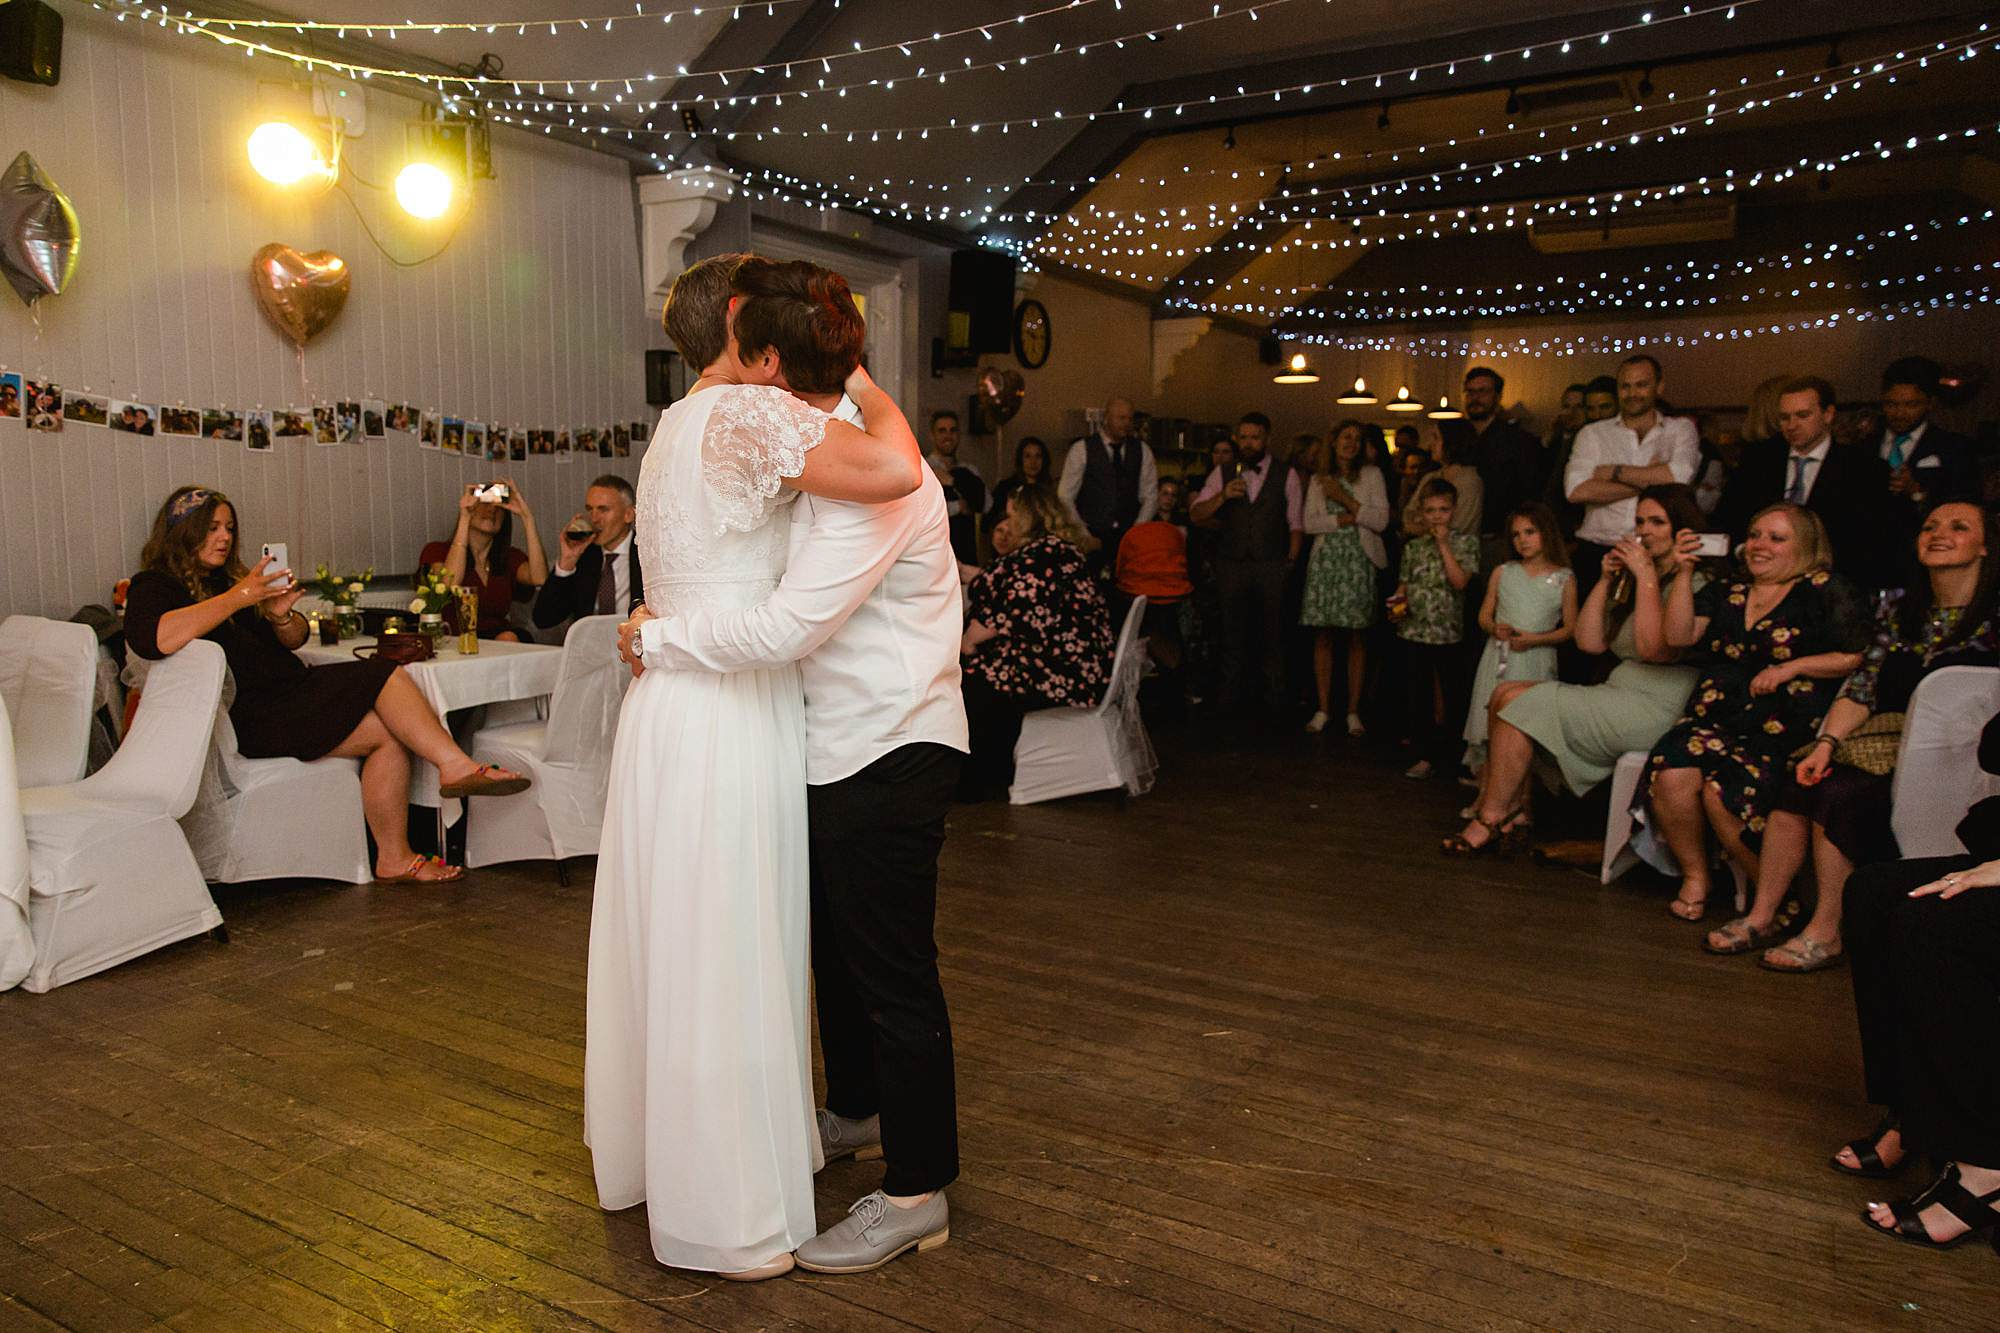 Twickenham wedding photography brides first dance at turks head pub